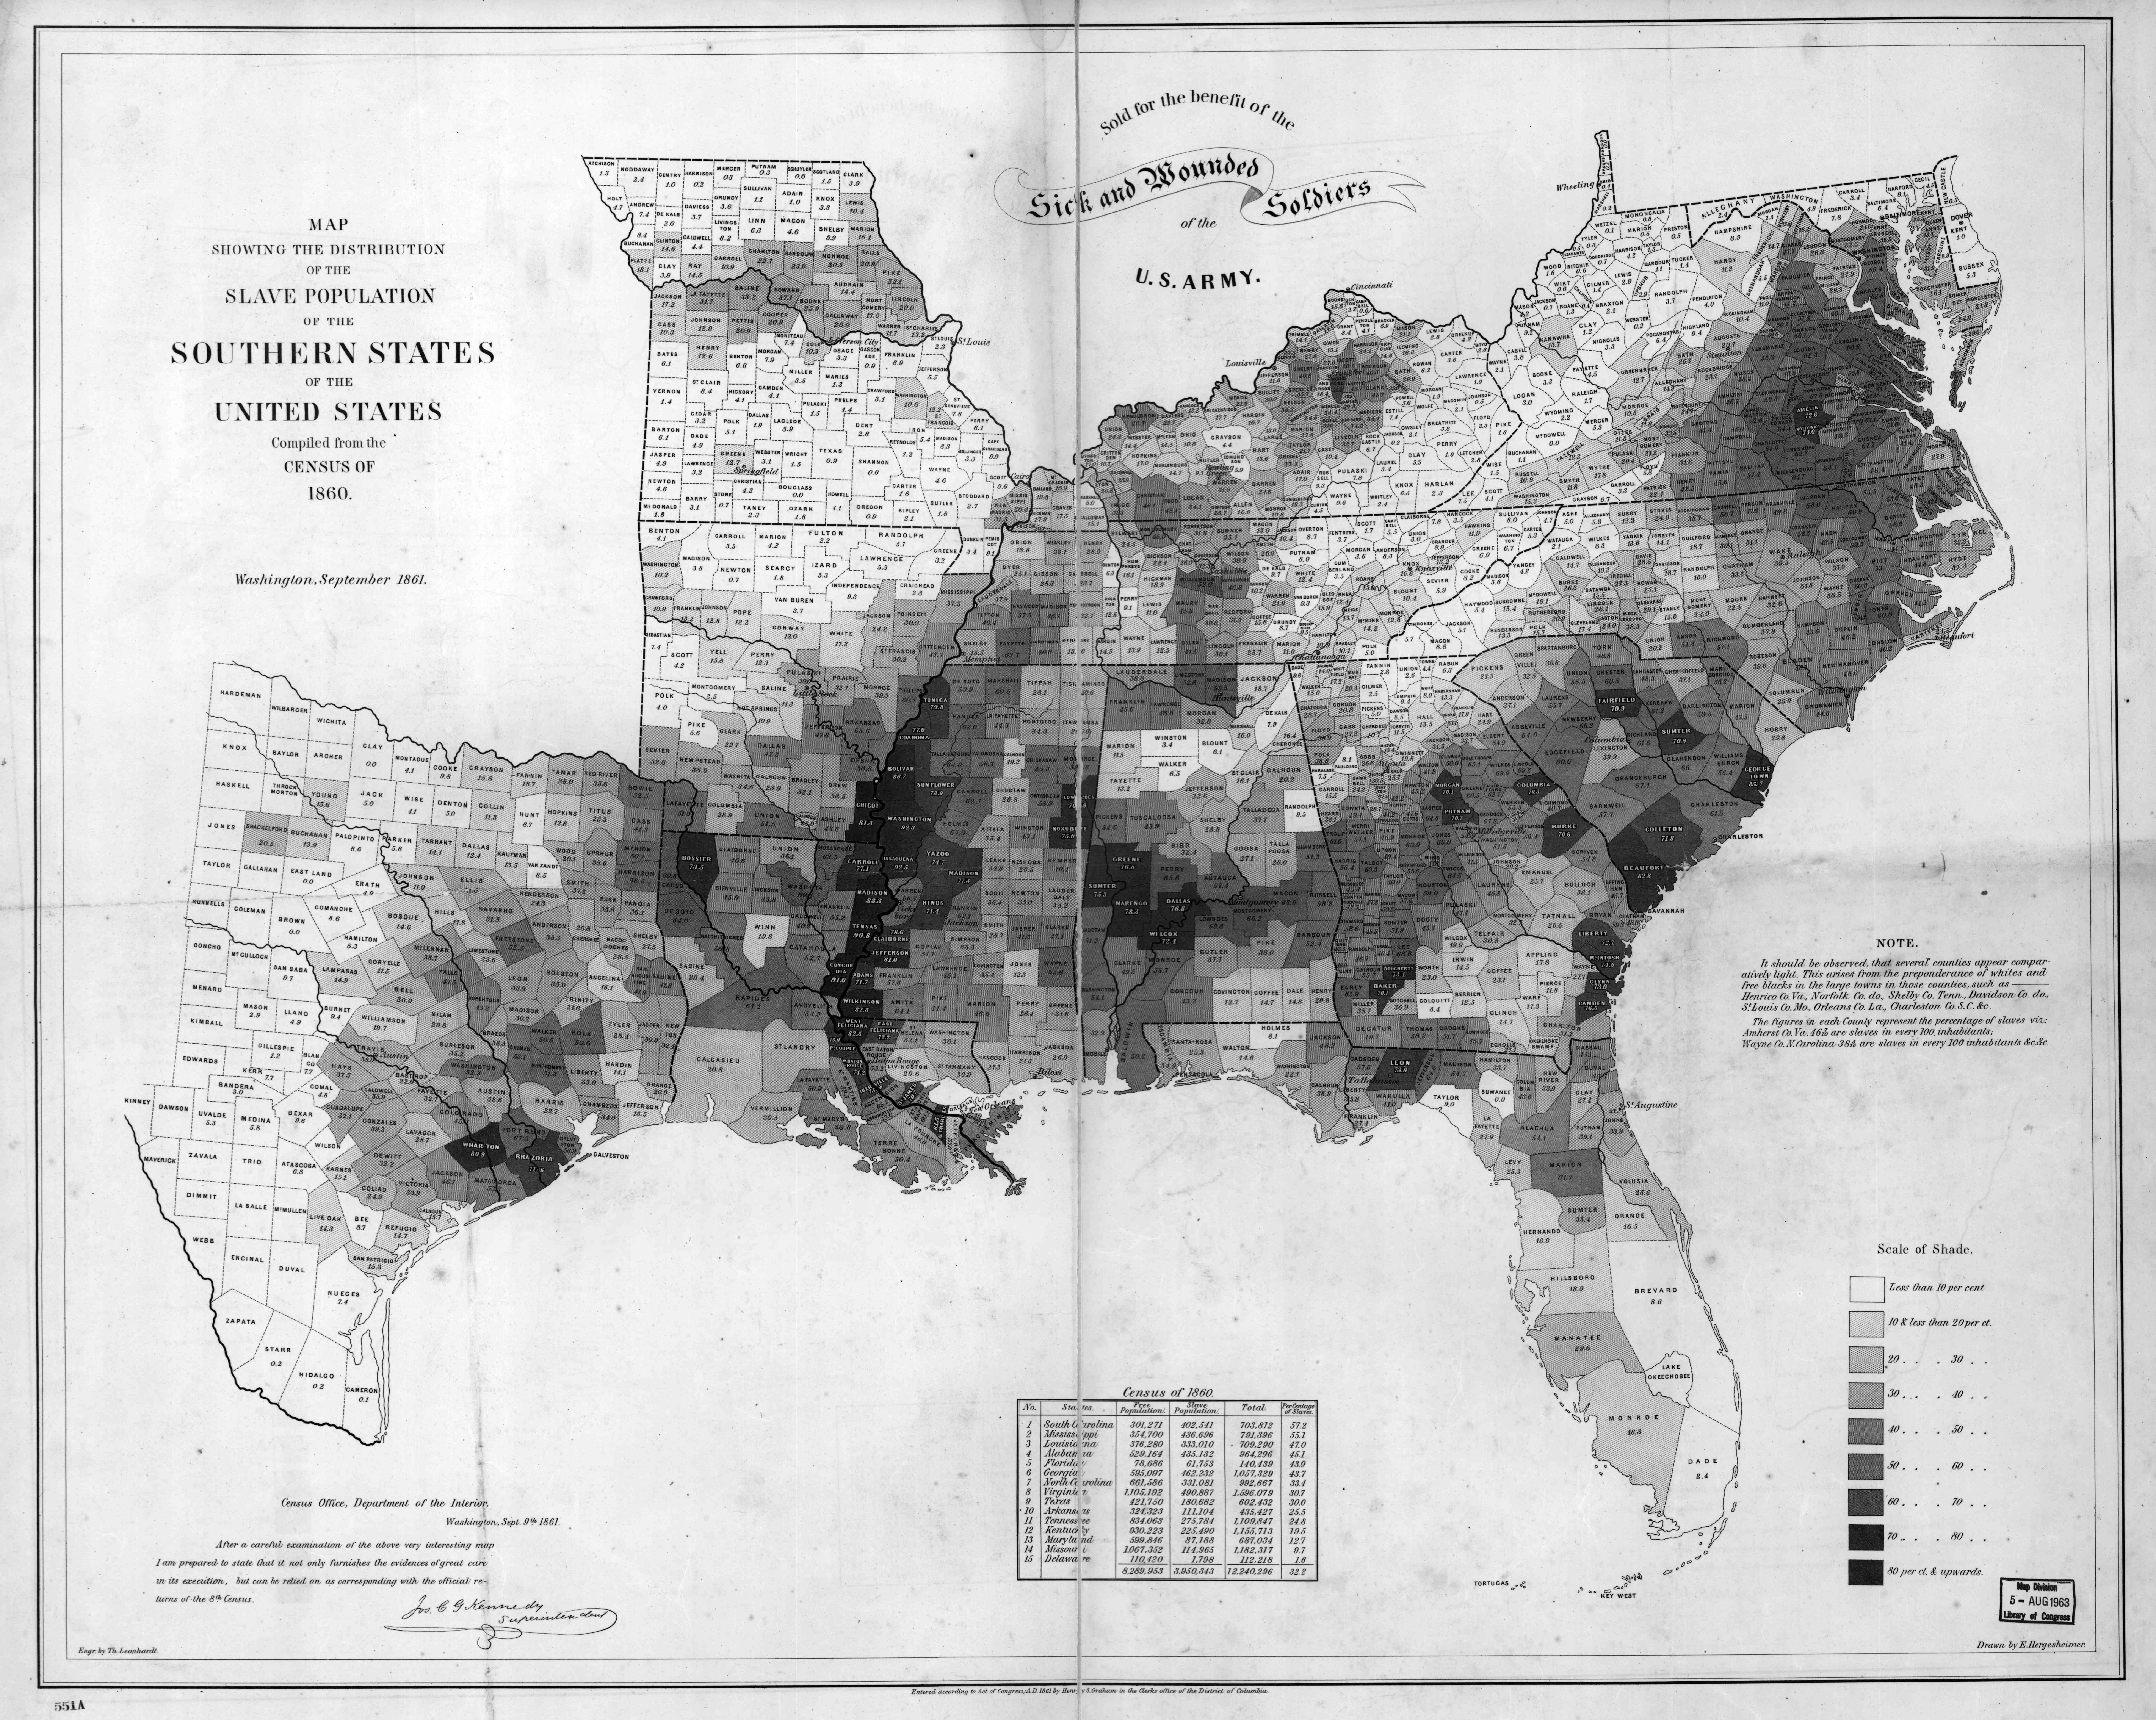 Distribution of the slave population of the southern United States